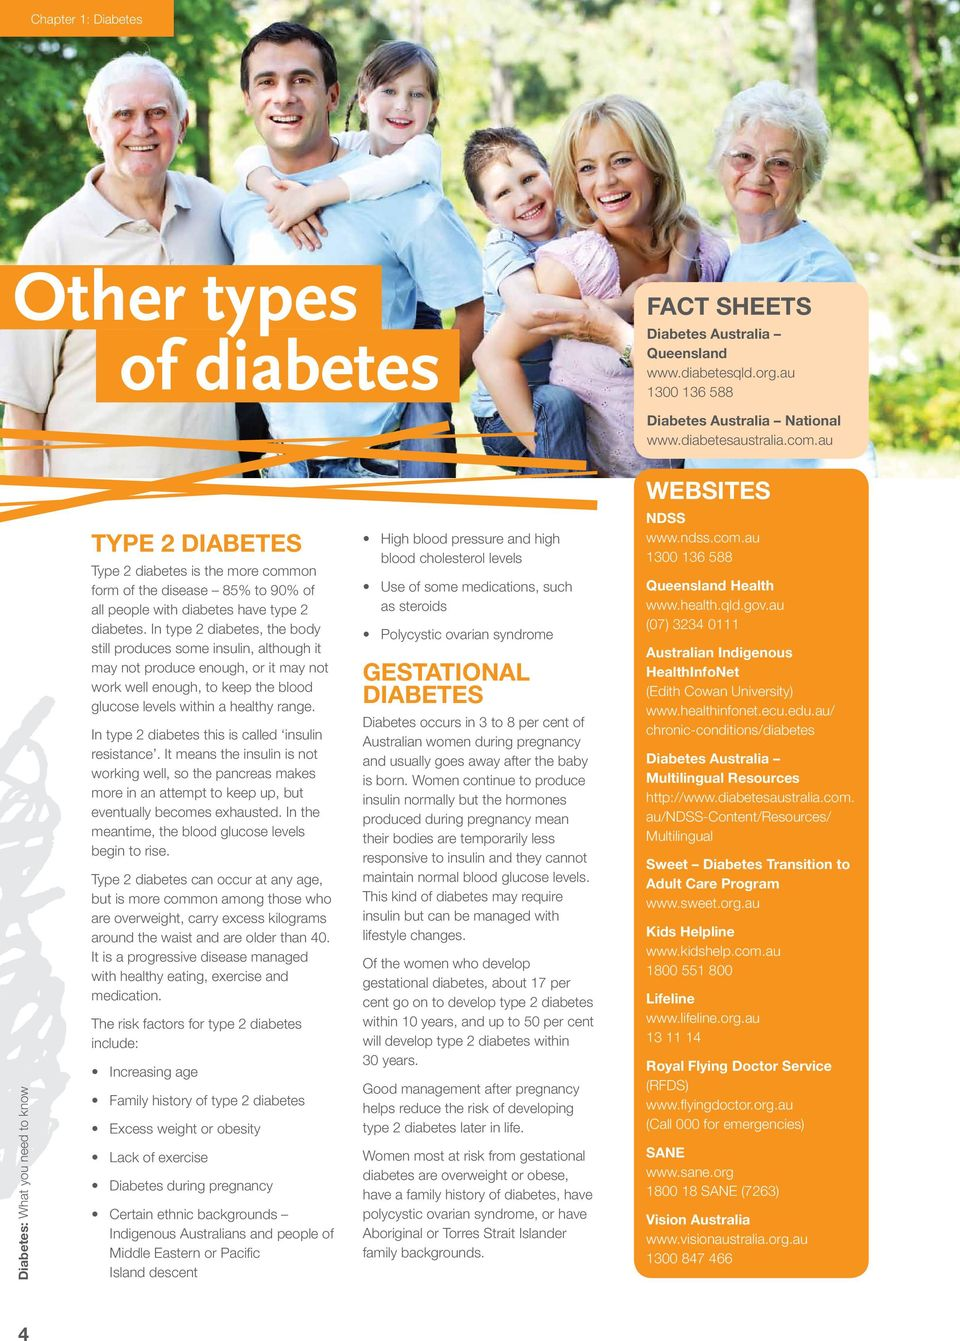 In type 2 diabetes, the body still produces some insulin, although it may not produce enough, or it may not work well enough, to keep the blood glucose levels within a healthy range.